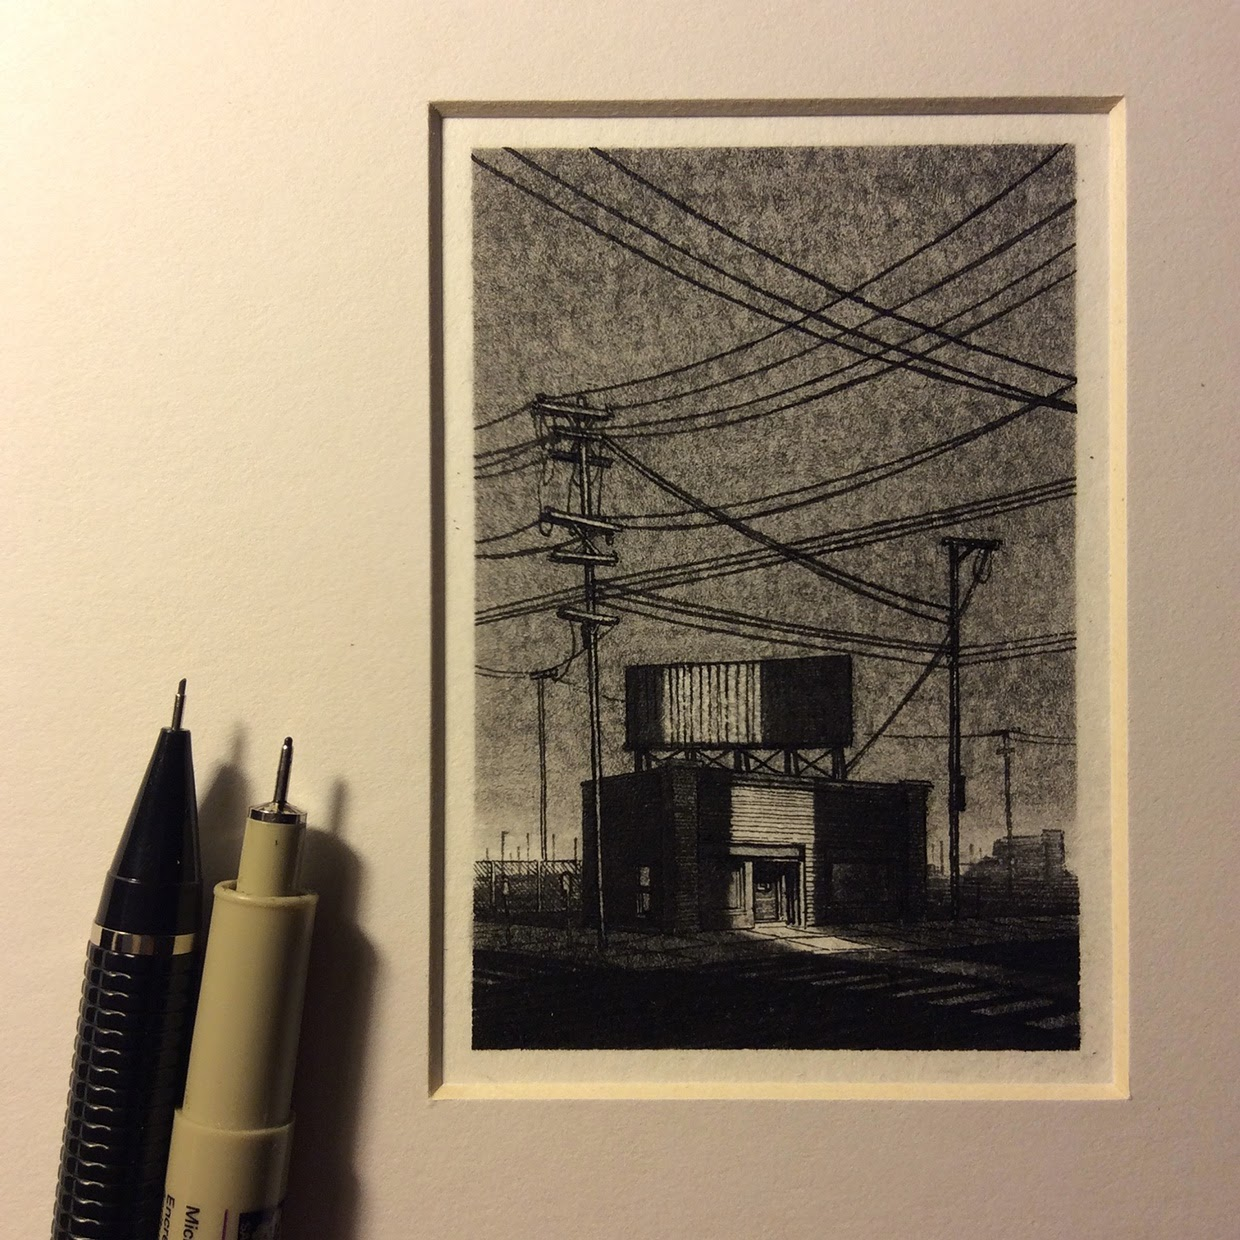 09-Taylor-Mazerhas-Miniature-Pencil-and-Ink-Drawings-with-a-lot-of-Detail-www-designstack-co